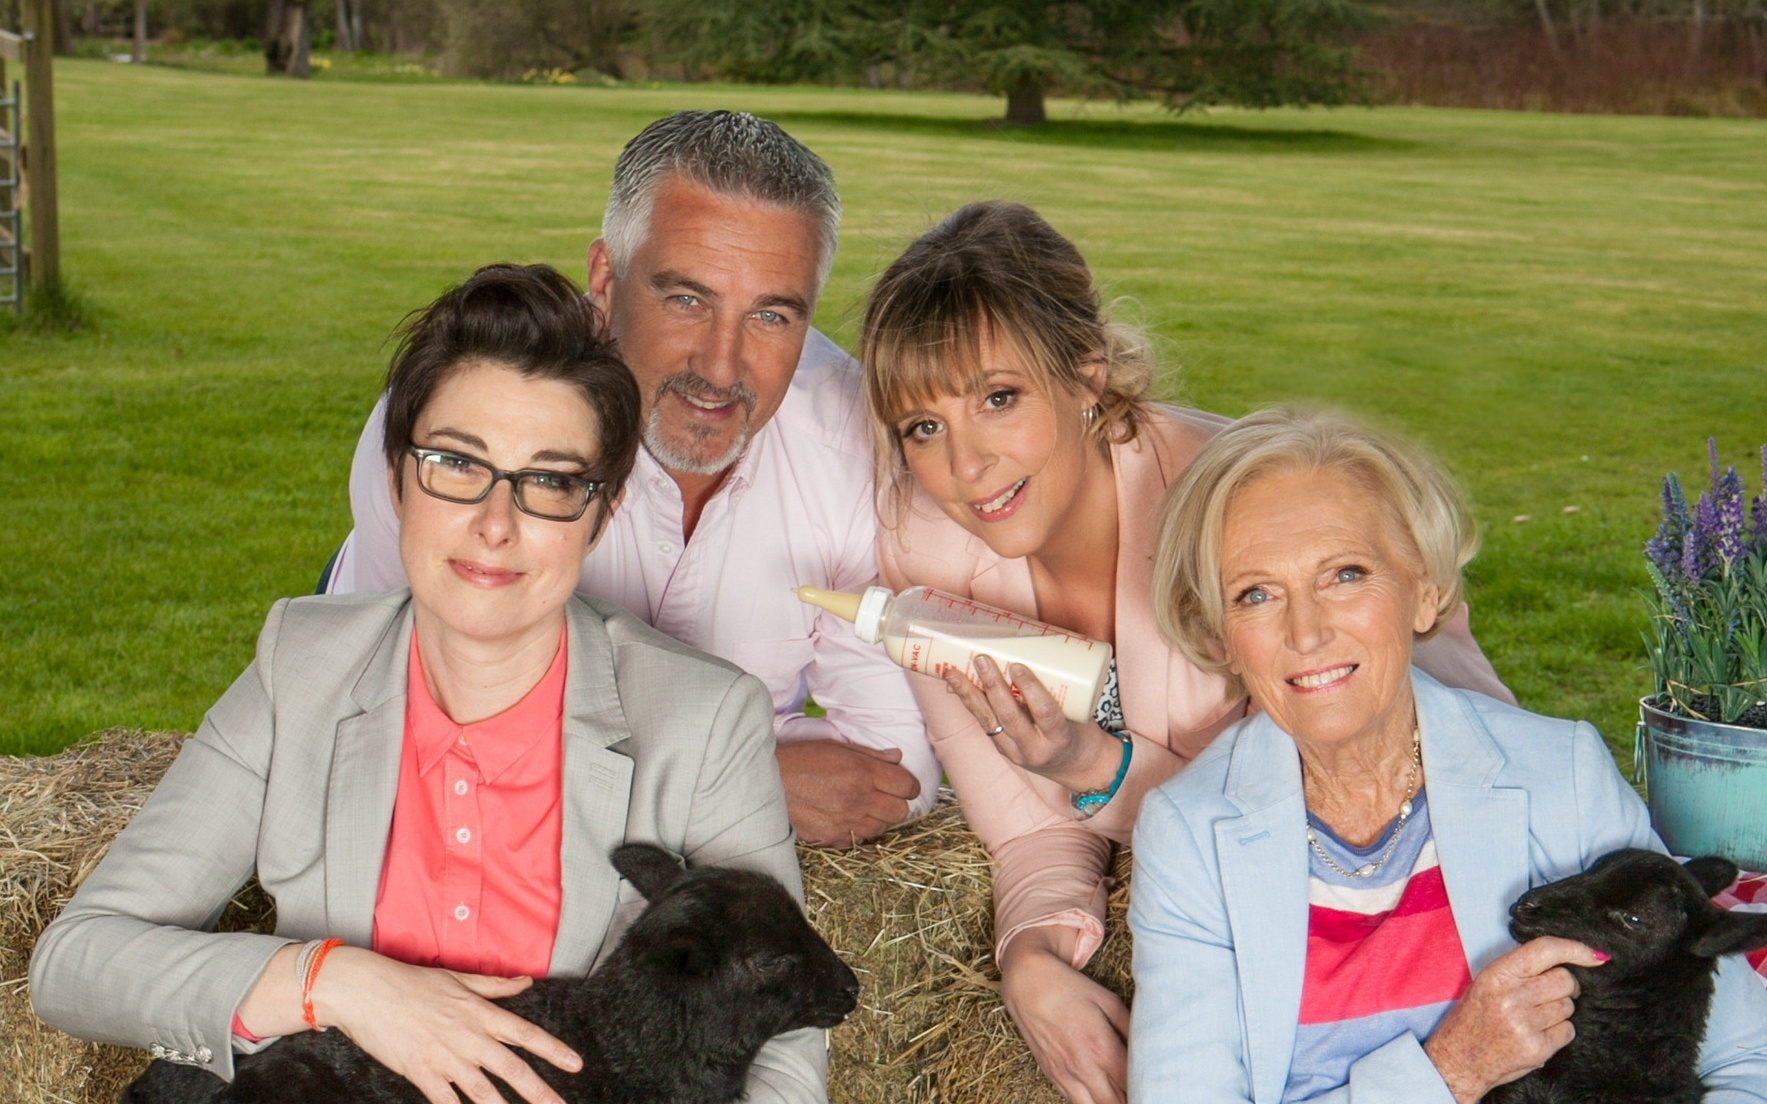 It's the end of an era in the Bake Off tent.